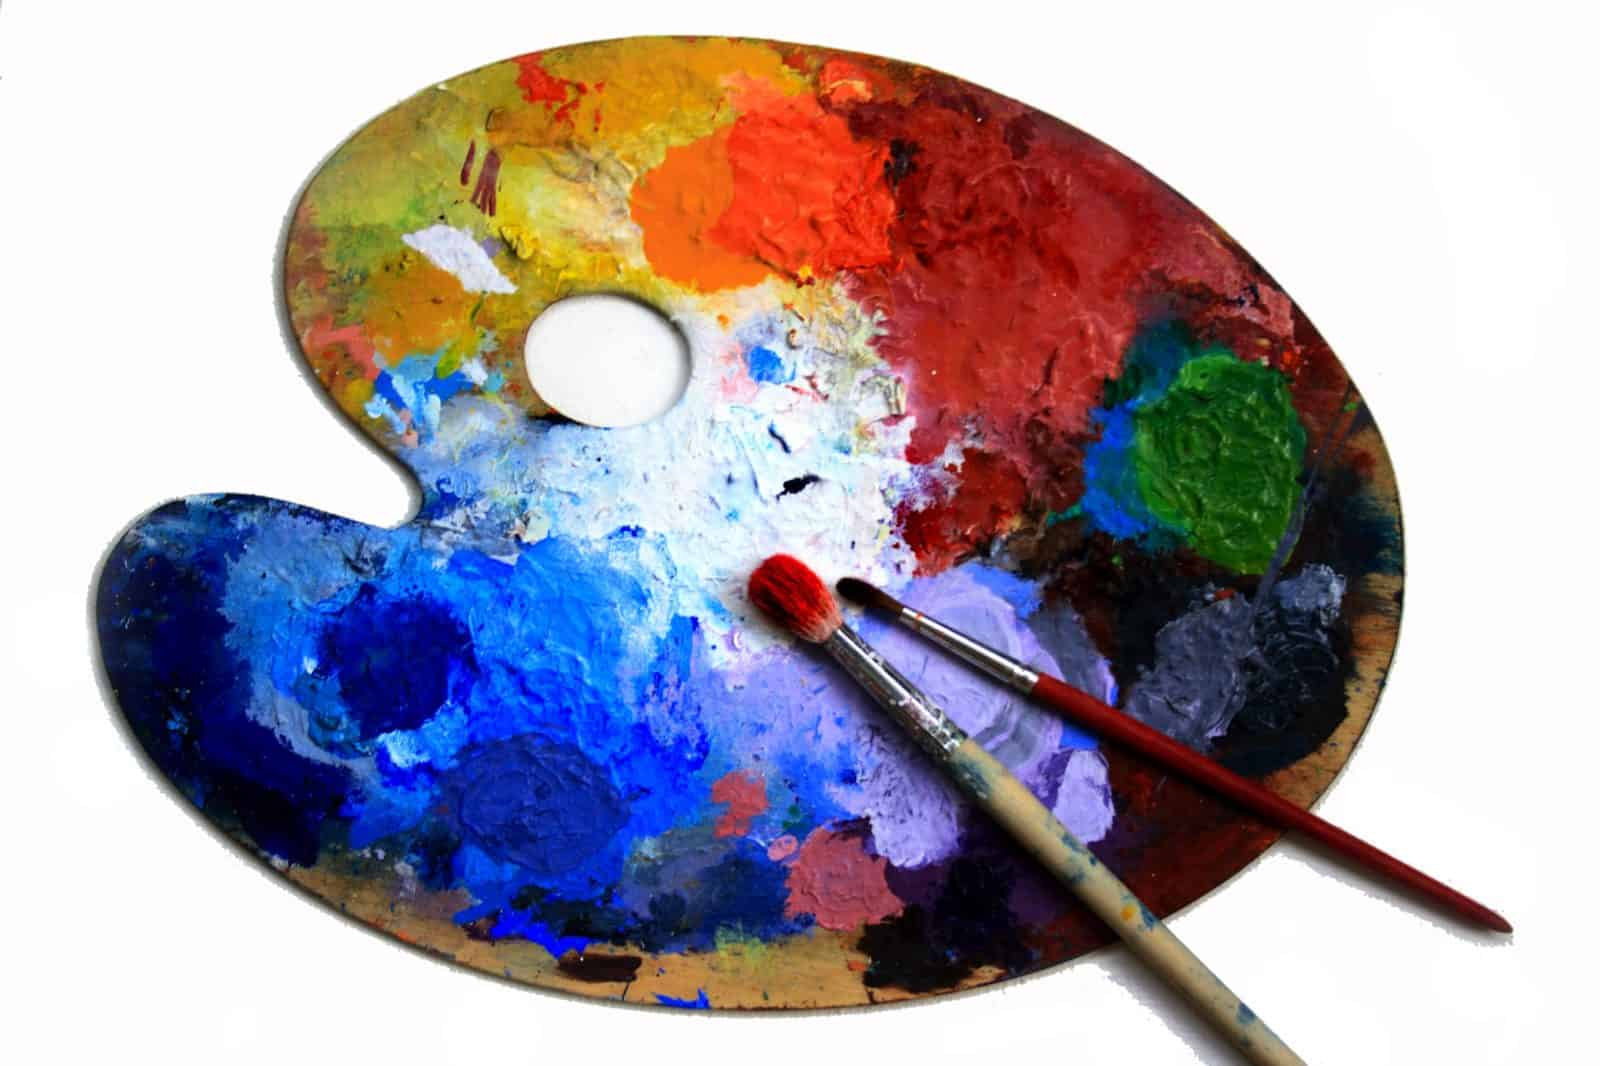 Get More People To View Your Art By Writing Articles